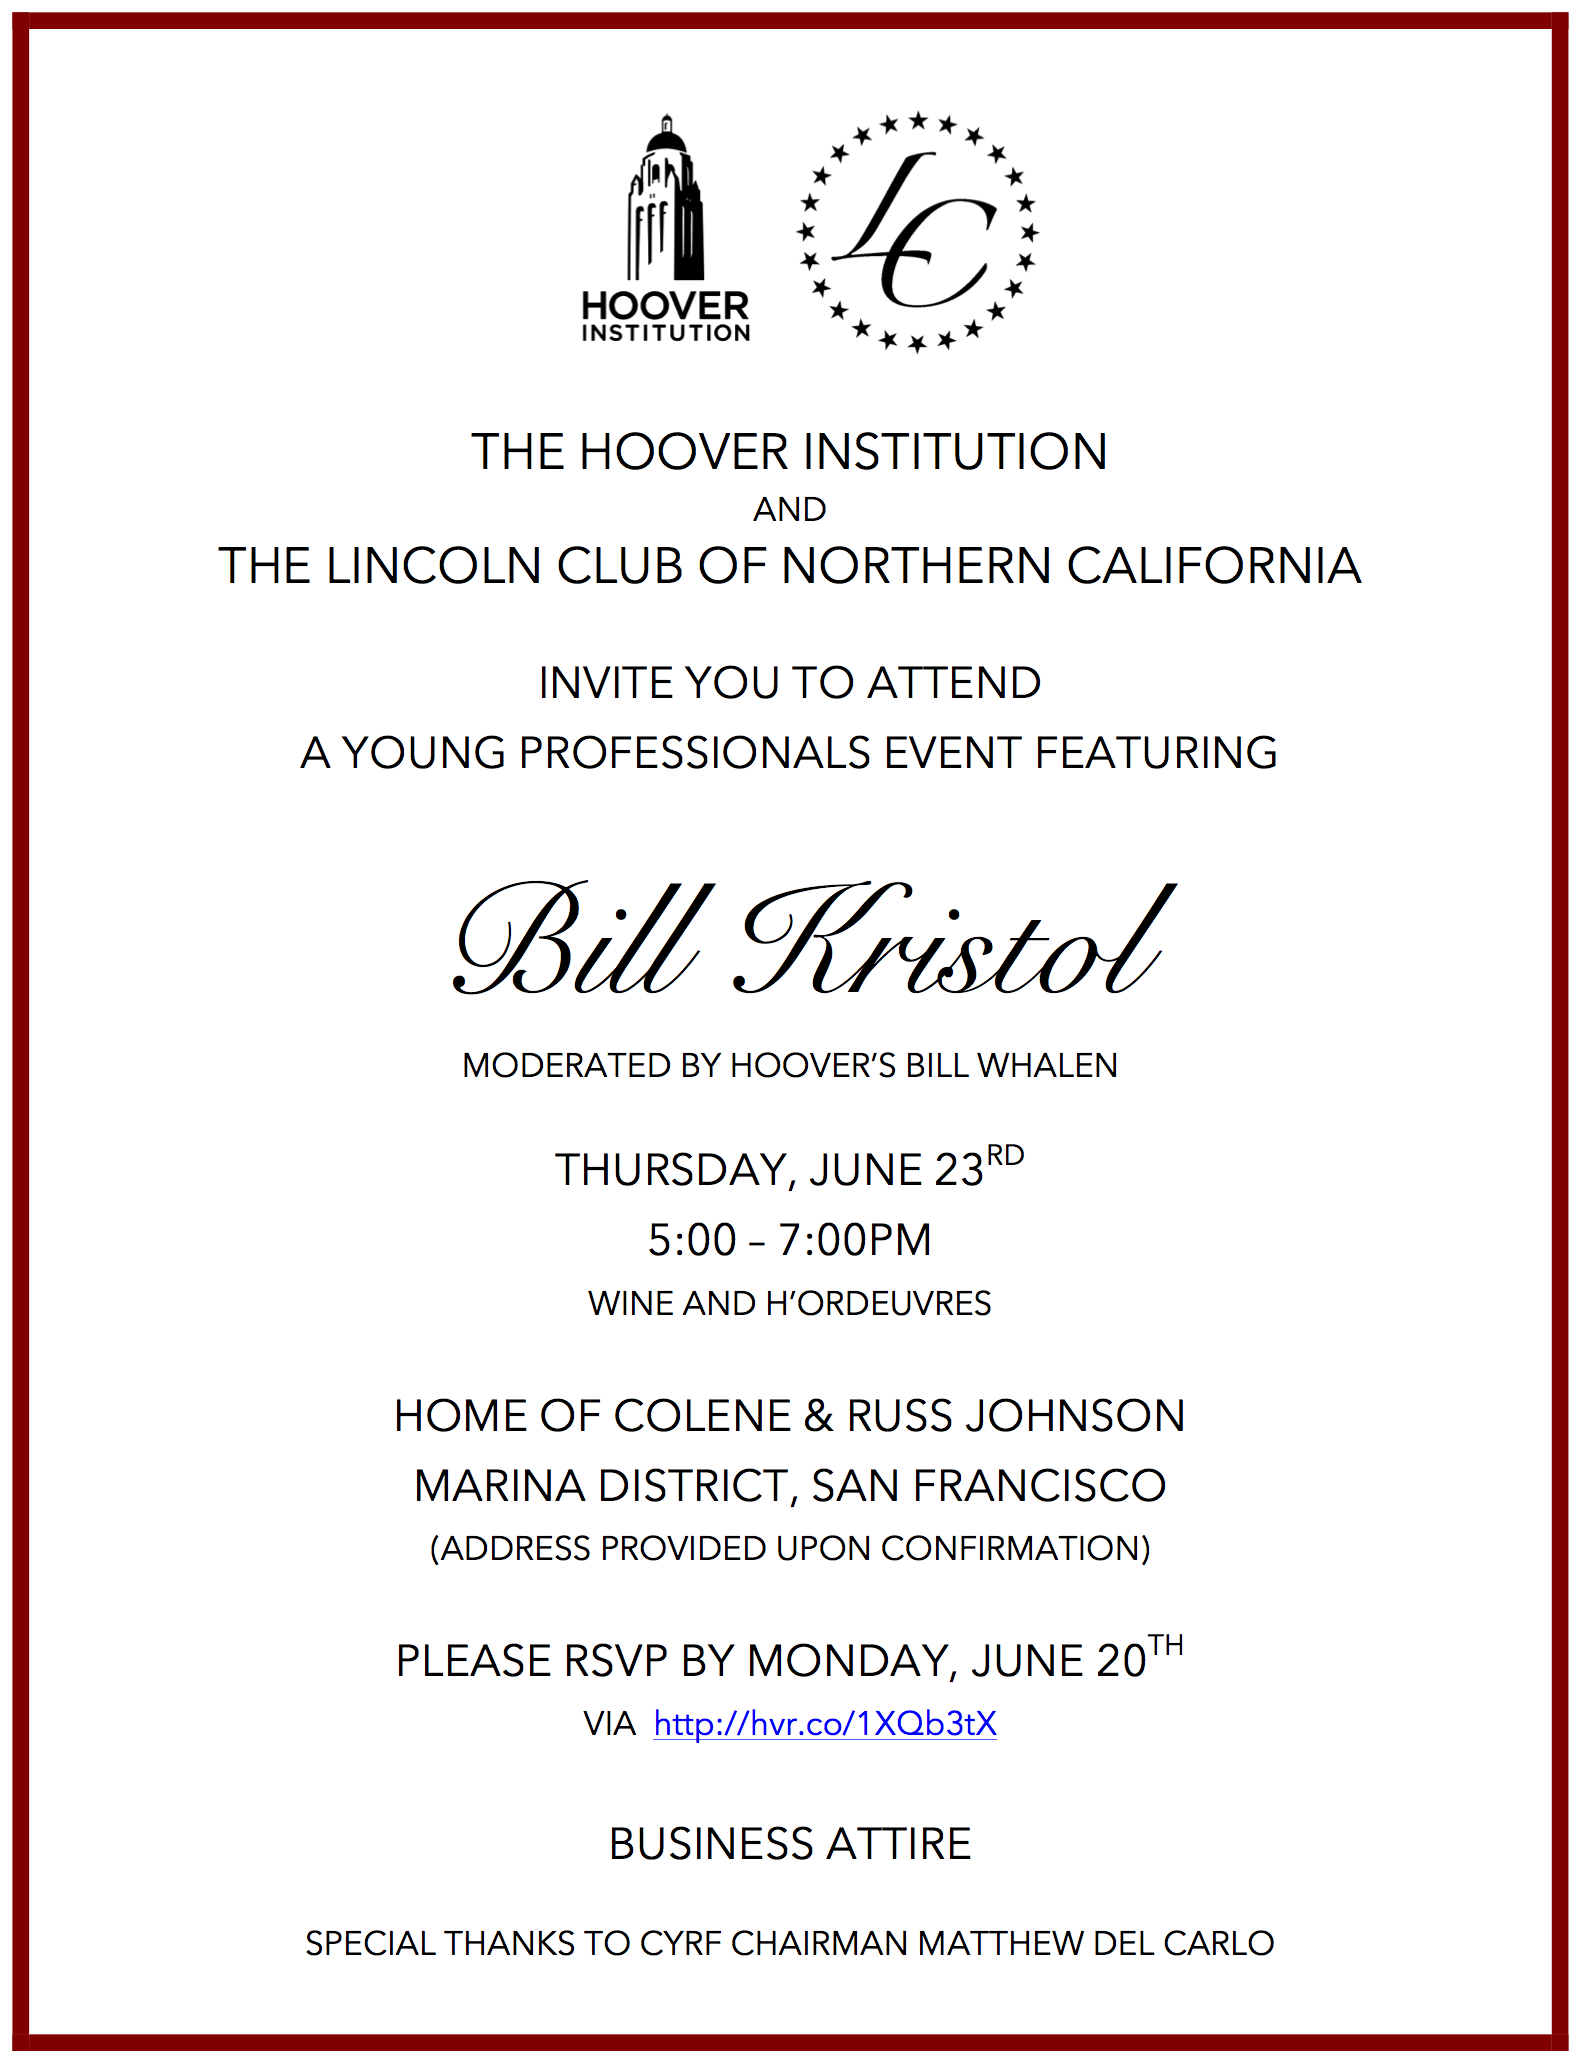 Lincoln_Club_with_Bill_Kristol_Image.jpg